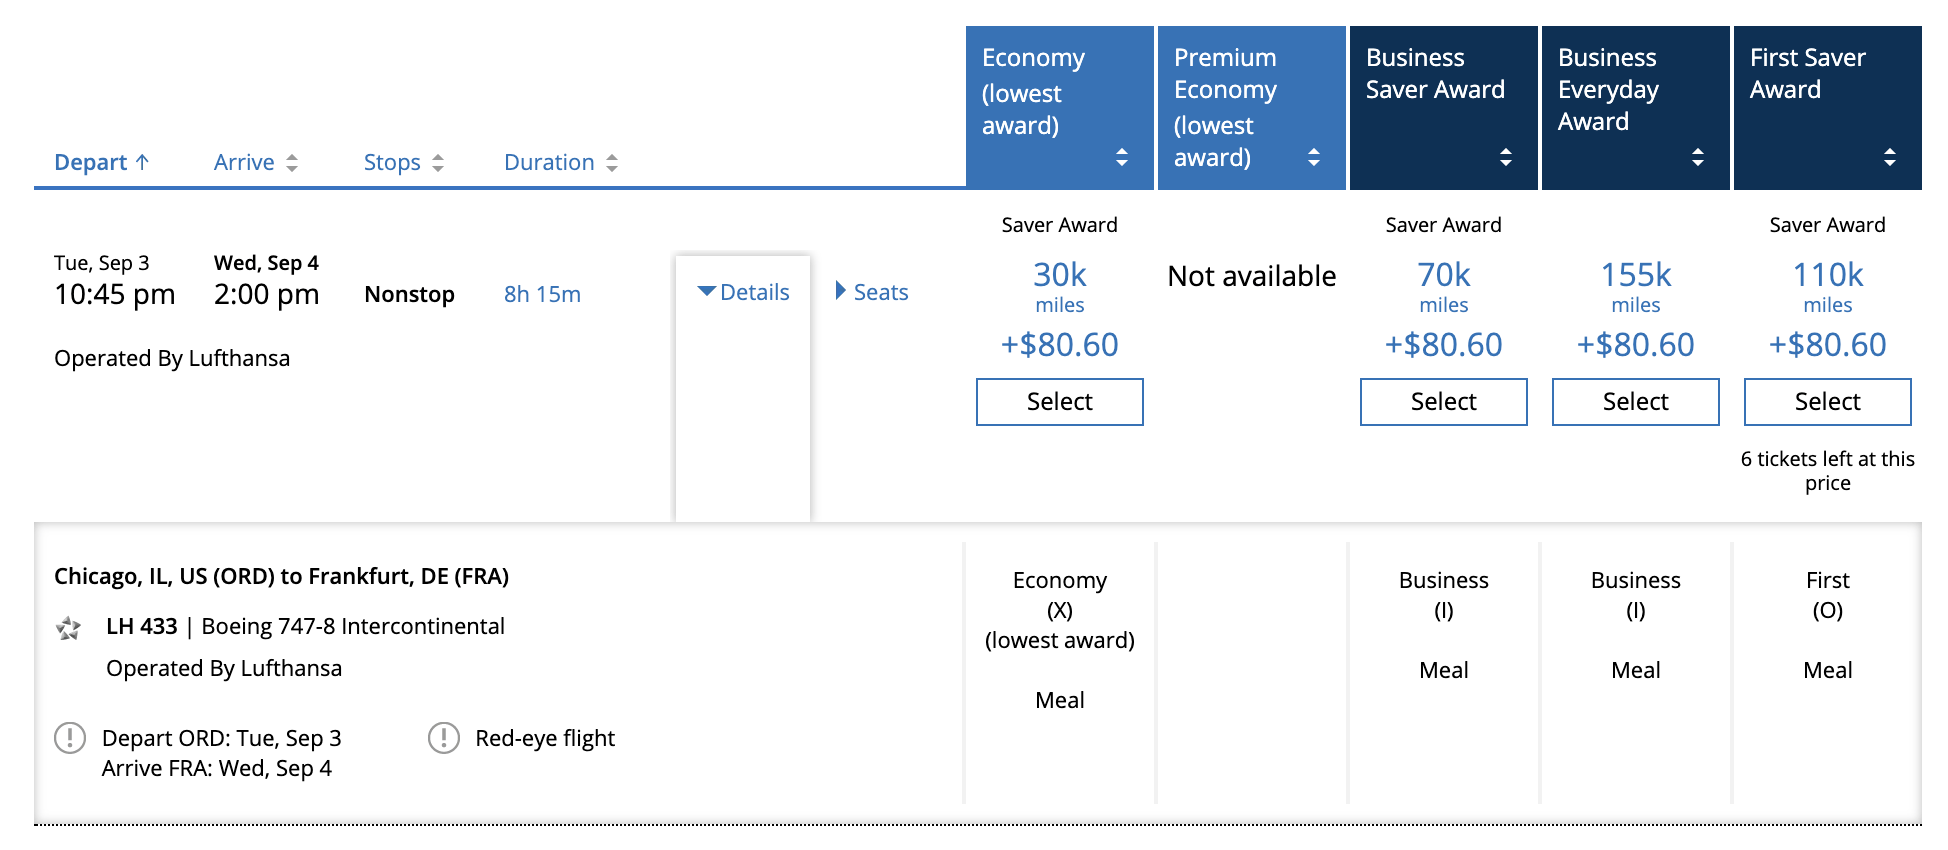 Lufthansa first class redemption rates through United MileagePlus